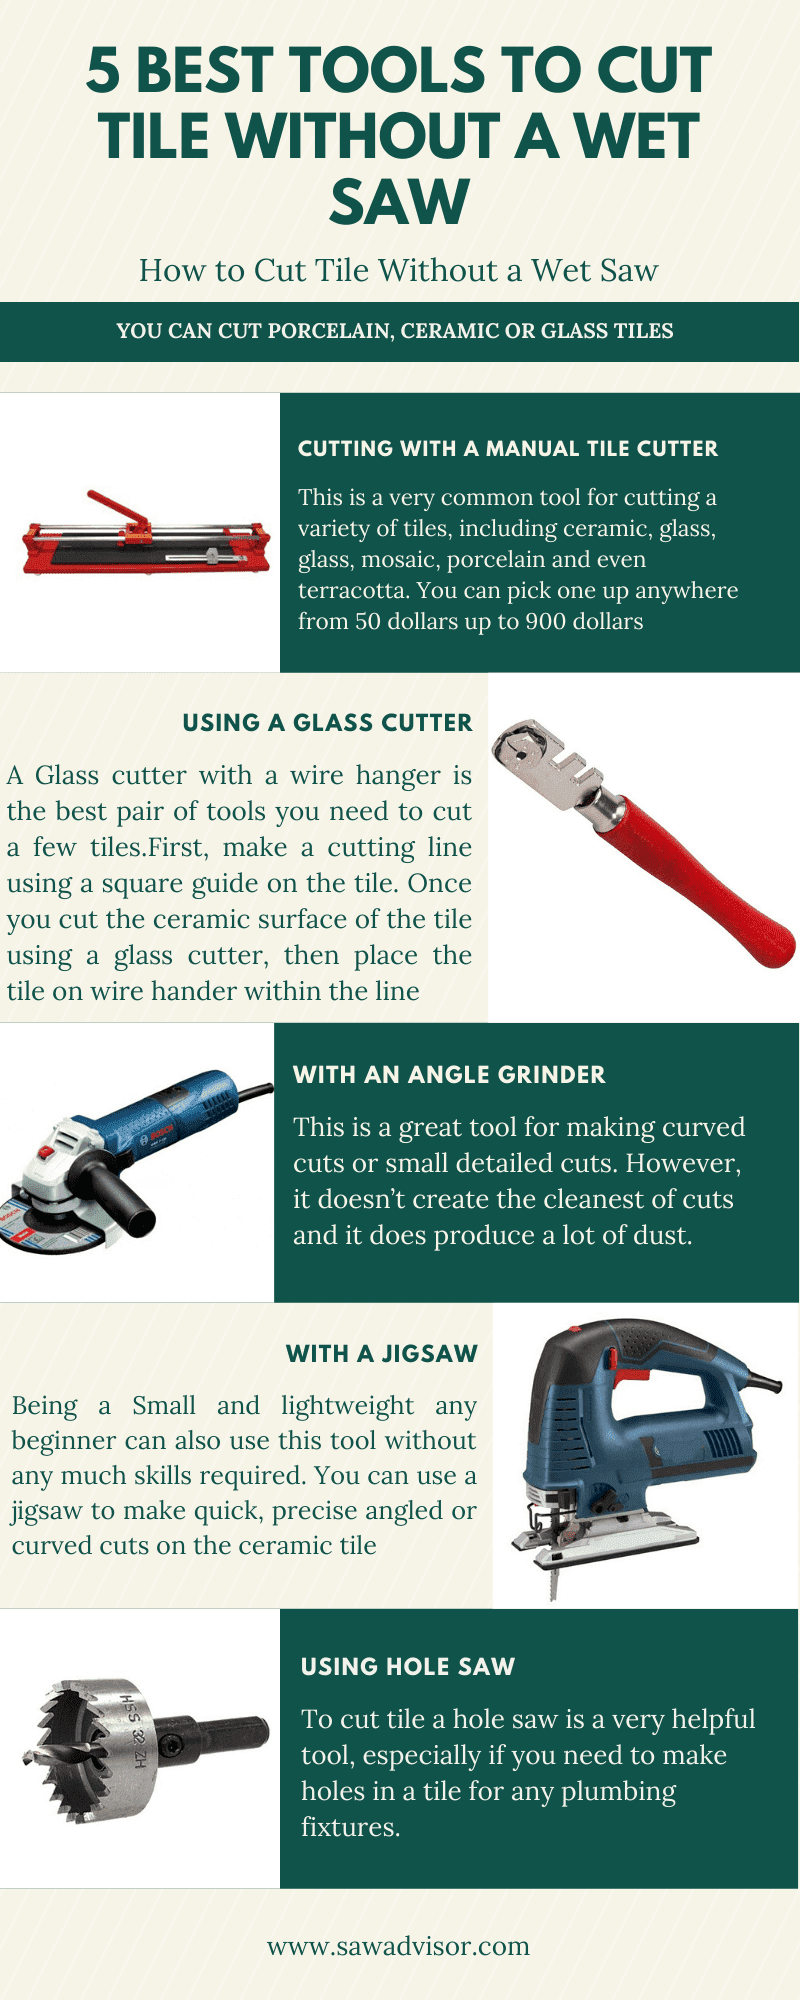 7 Best Tools to Cut Tile without a Wet Saw #infographic